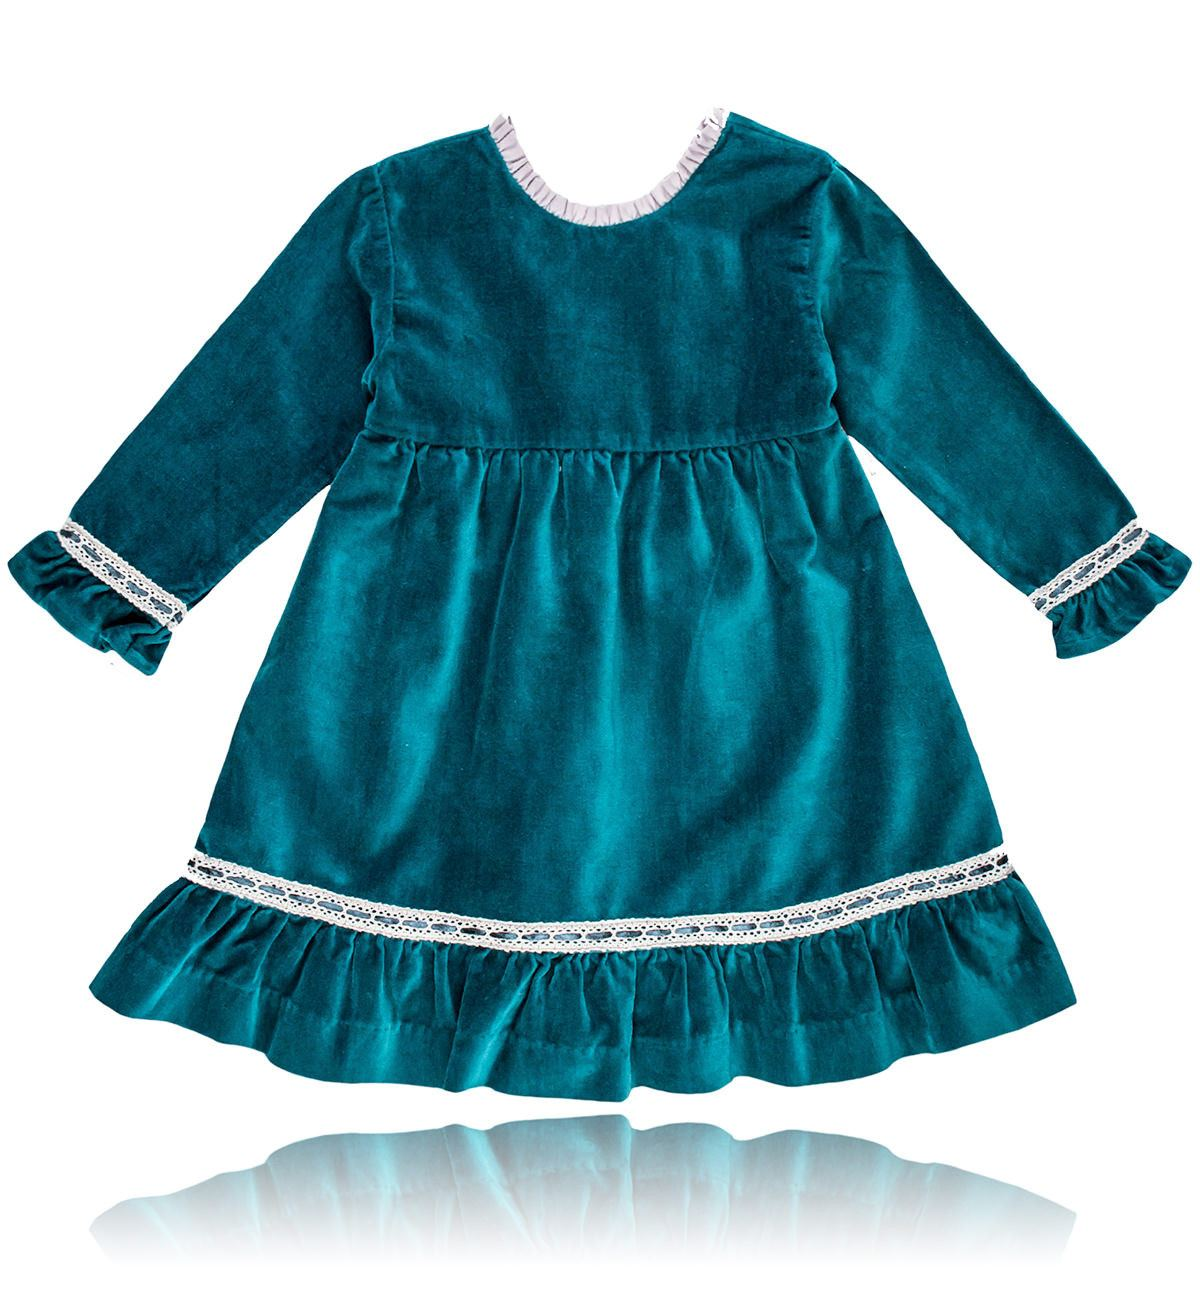 Spanish baby clothes | baby Dress | Green & pearl grey velvet dress |babymaC  - 1